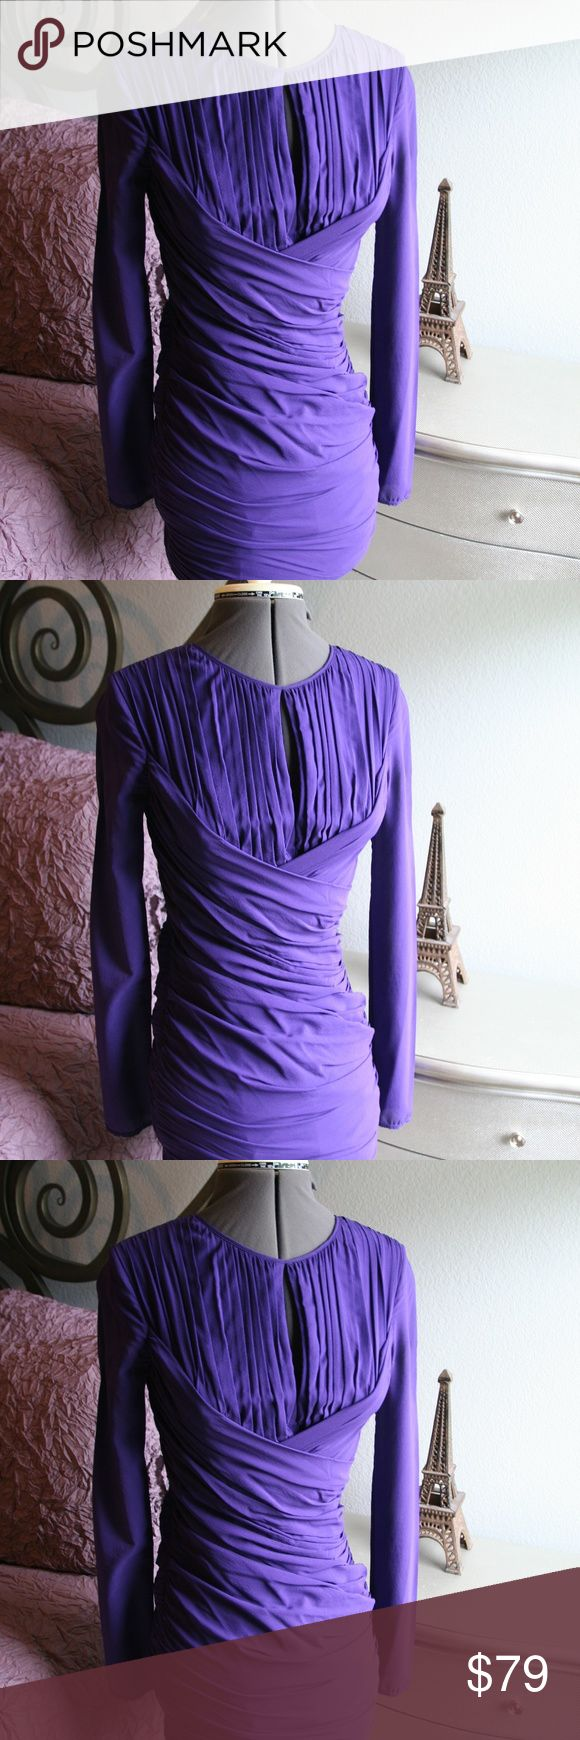 Jill Stuart Purple Cocktail Dress Worn once!  Make this your new holiday classic.  Purple Jill Stuart cocktail dress, size 2. Sheer illusion sleeves give it on-trend flair. Ruched bottom half is super-flattering. Some statement earrings and heels, and you're good to go to your next night out, holiday party, girl's night out, etc. Jill Stuart Dresses Long Sleeve